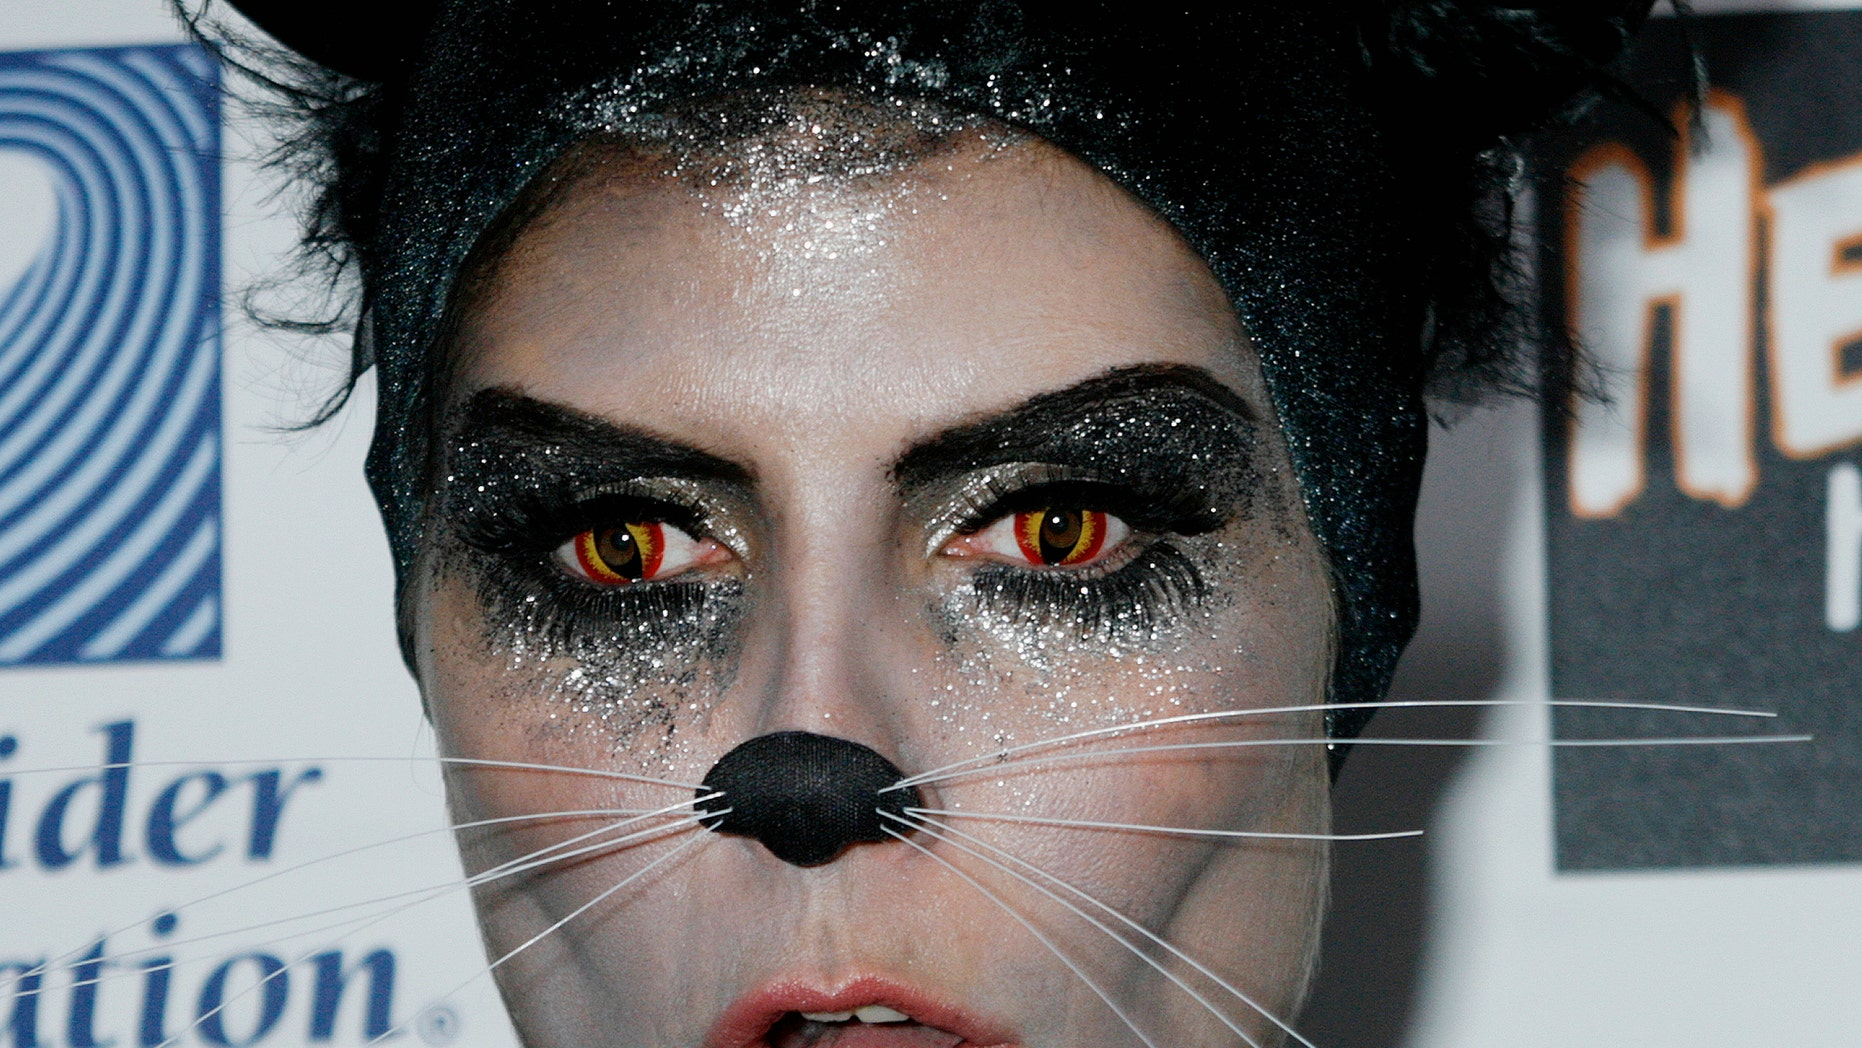 Heidi Klum wears a cat costume with special contact lenses to change her eye color at the 8th annual Heidi Klum Halloween Party in Hollywood, California  October 31, 2007.  Officials are now warning that illegal colored contact lenses may prove harmful to eyes. (REUTERS/Fred Prouser)